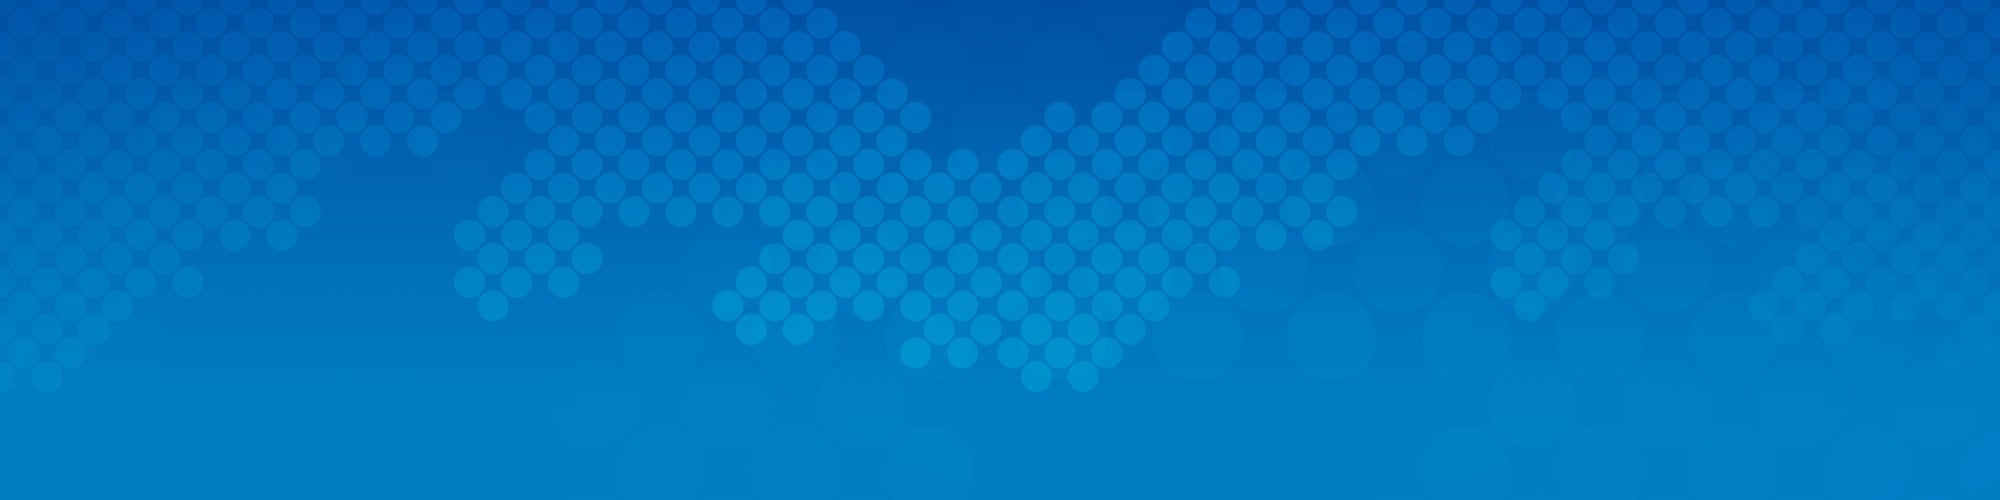 partnerNet abstract background